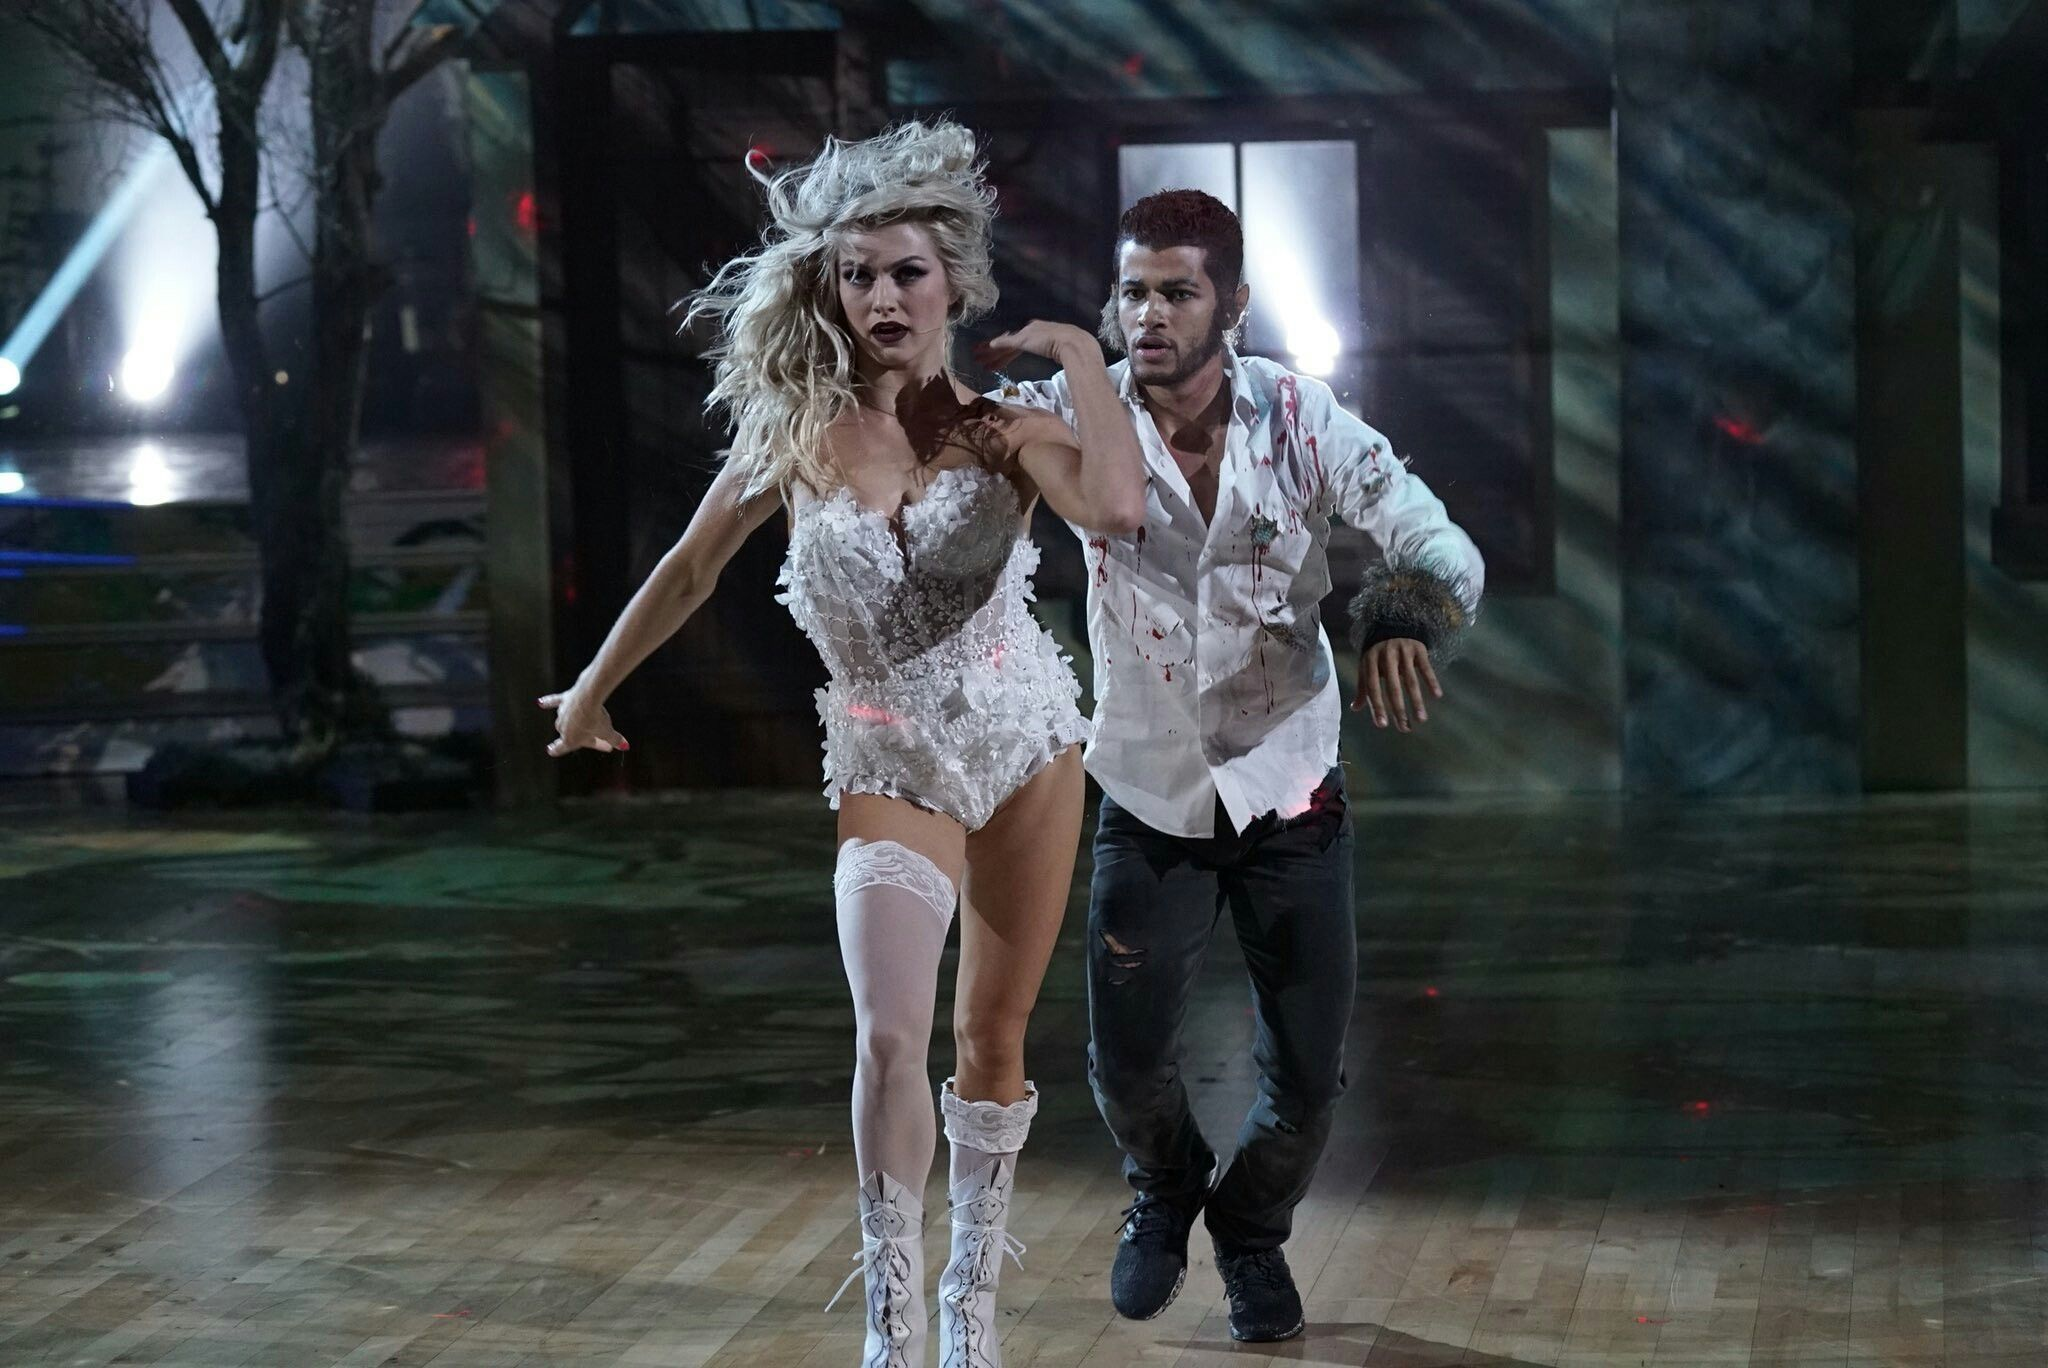 Dwts Teamfishuponastar Dancing With The Stars Dwts Performance Outfit